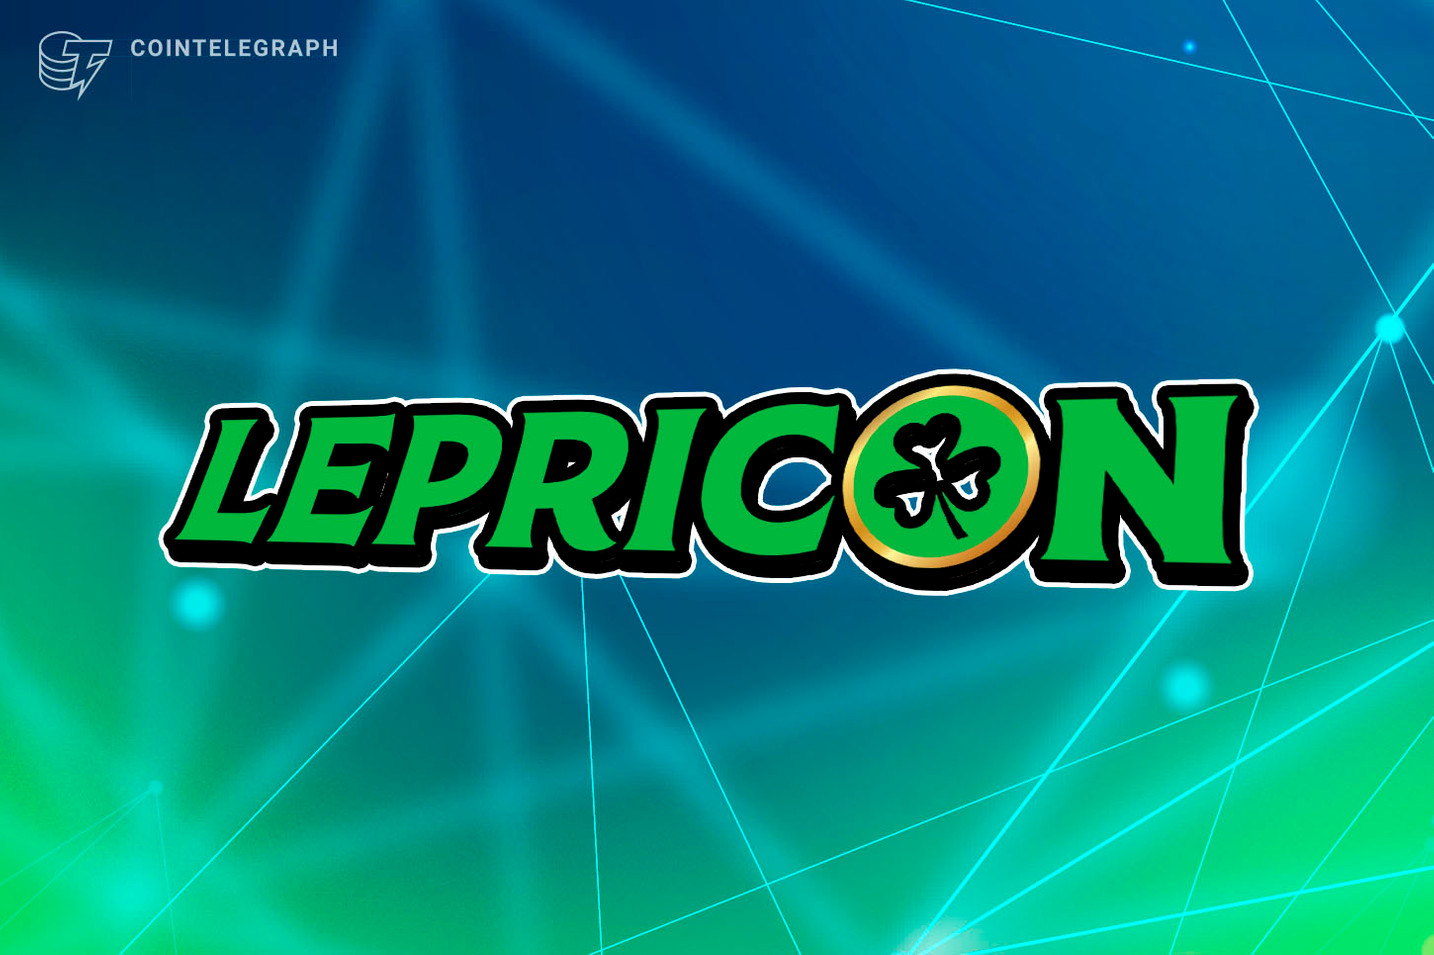 Lepricon private sale oversubscribed by 7x. St. Patrick's Day DEX listing